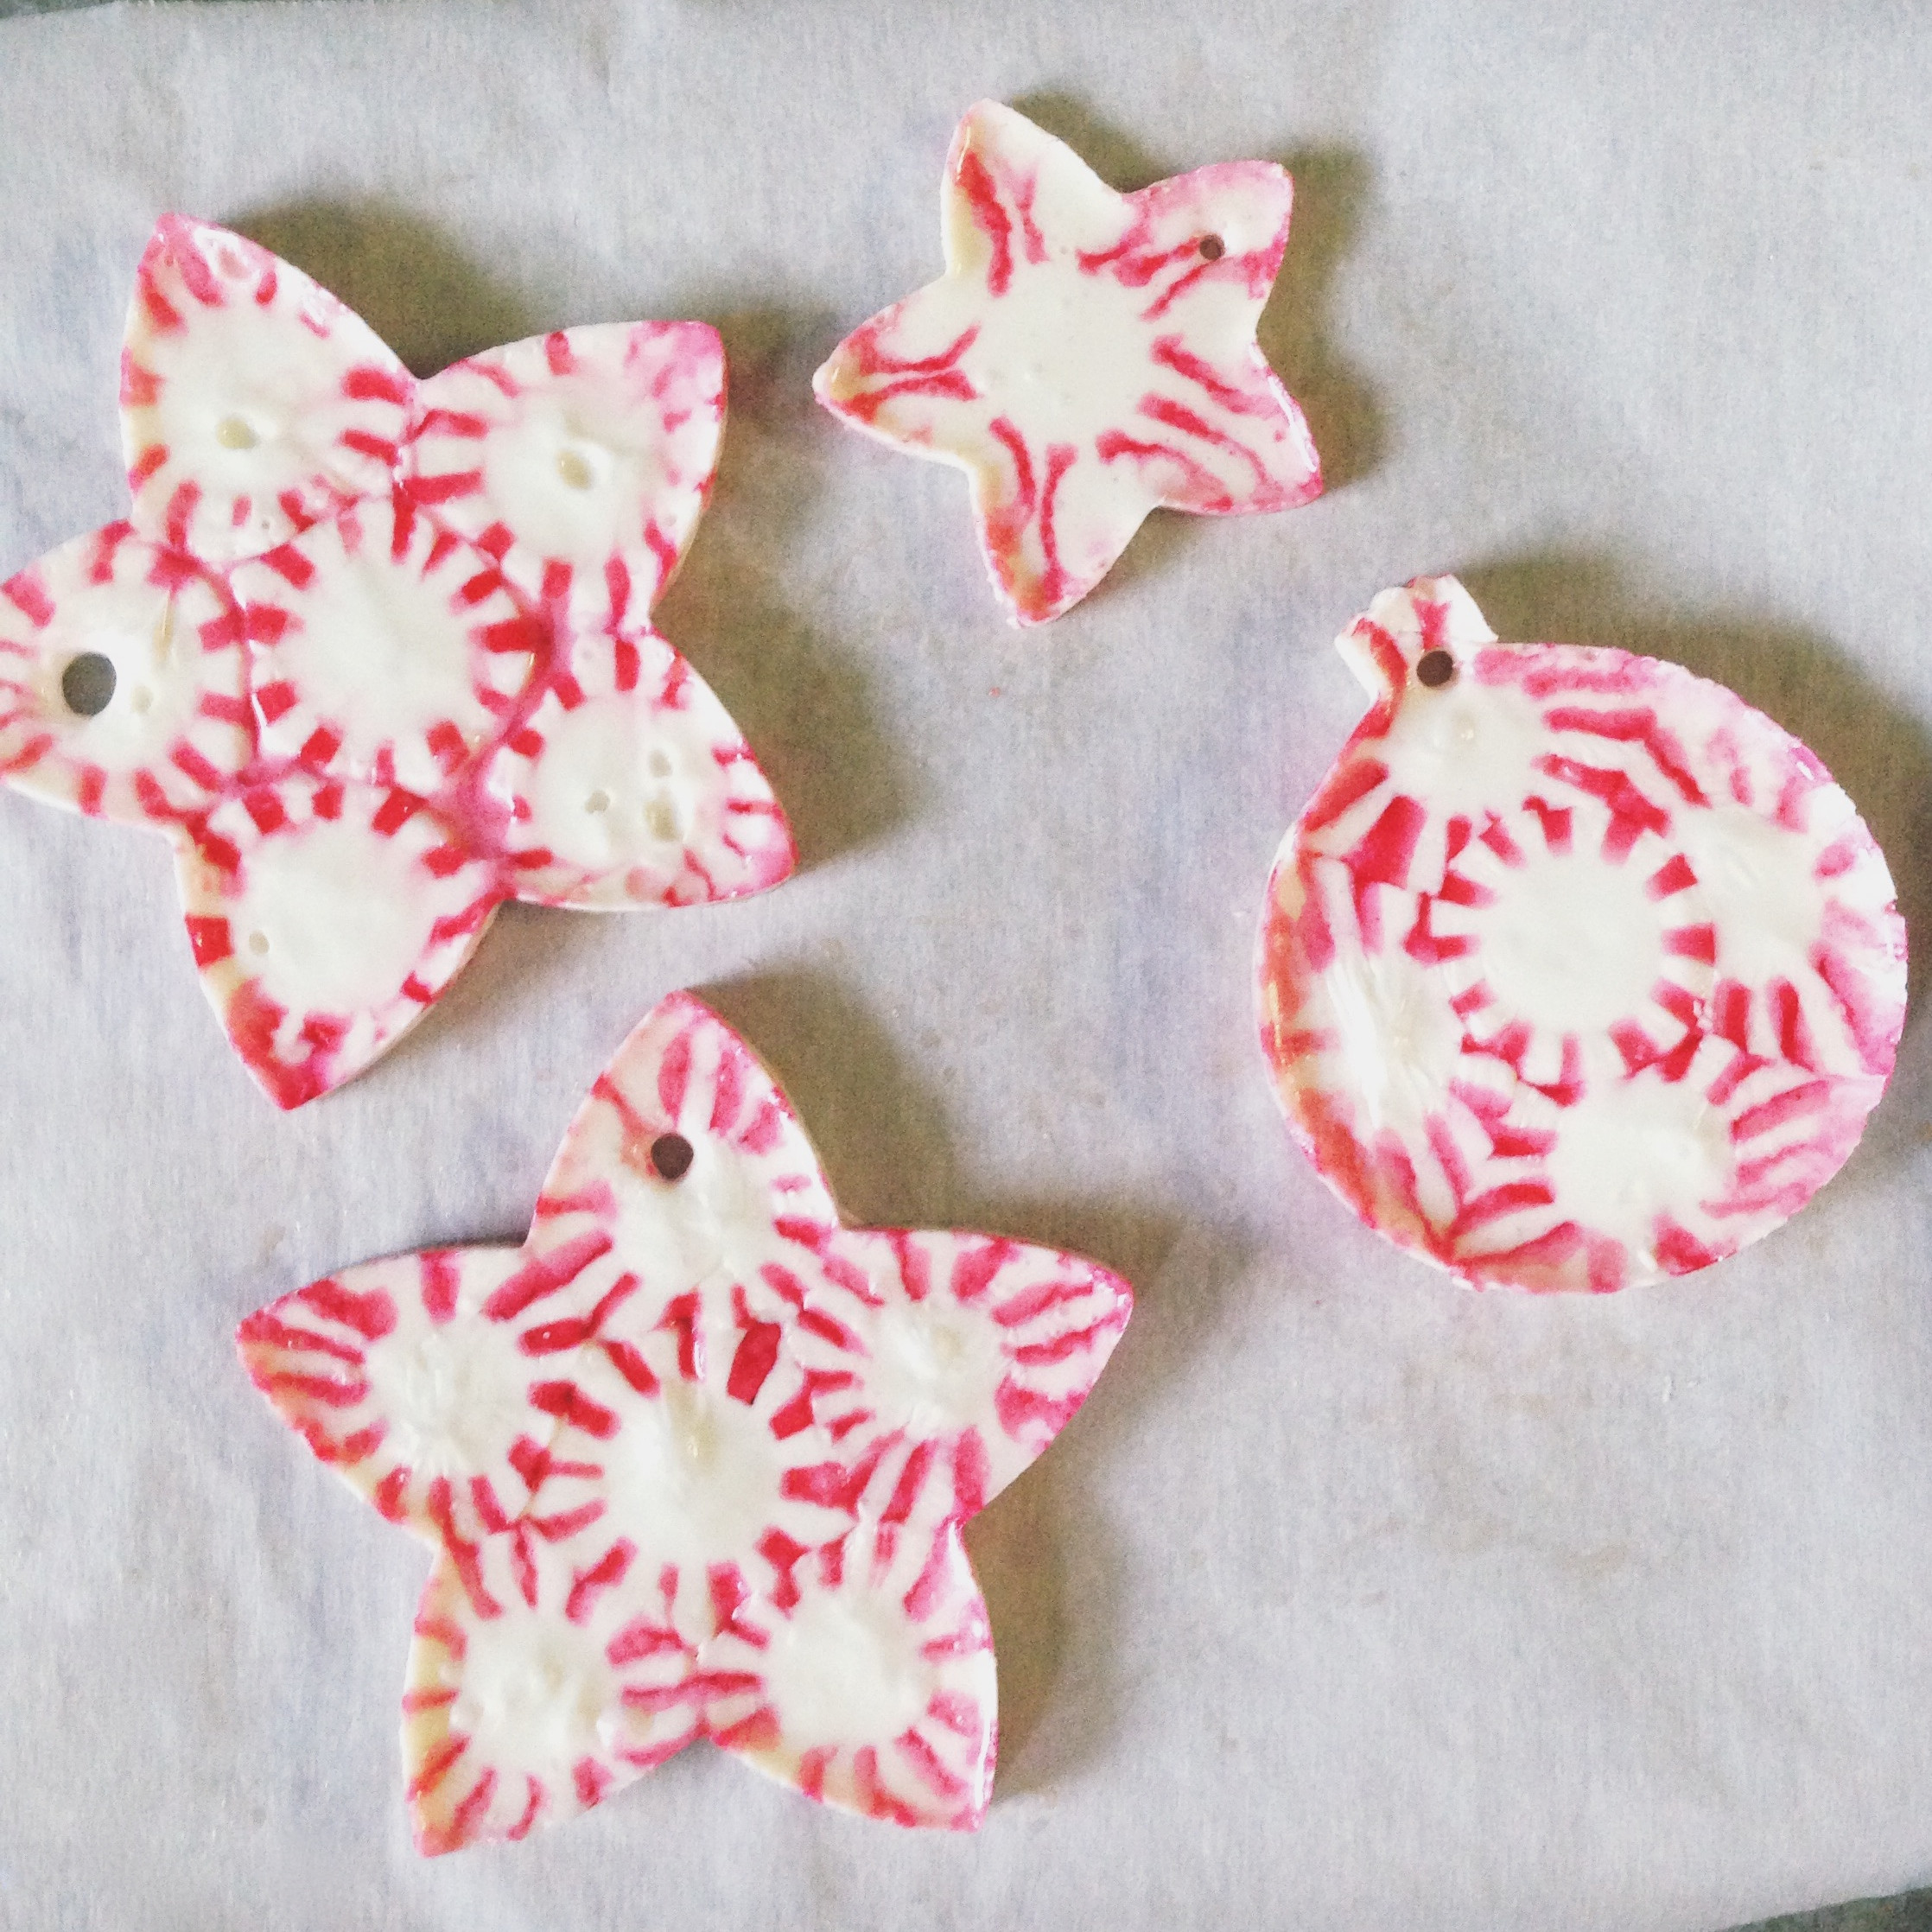 Peppermint Candy Christmas Ornaments  Peppermint Candy Christmas Ornaments